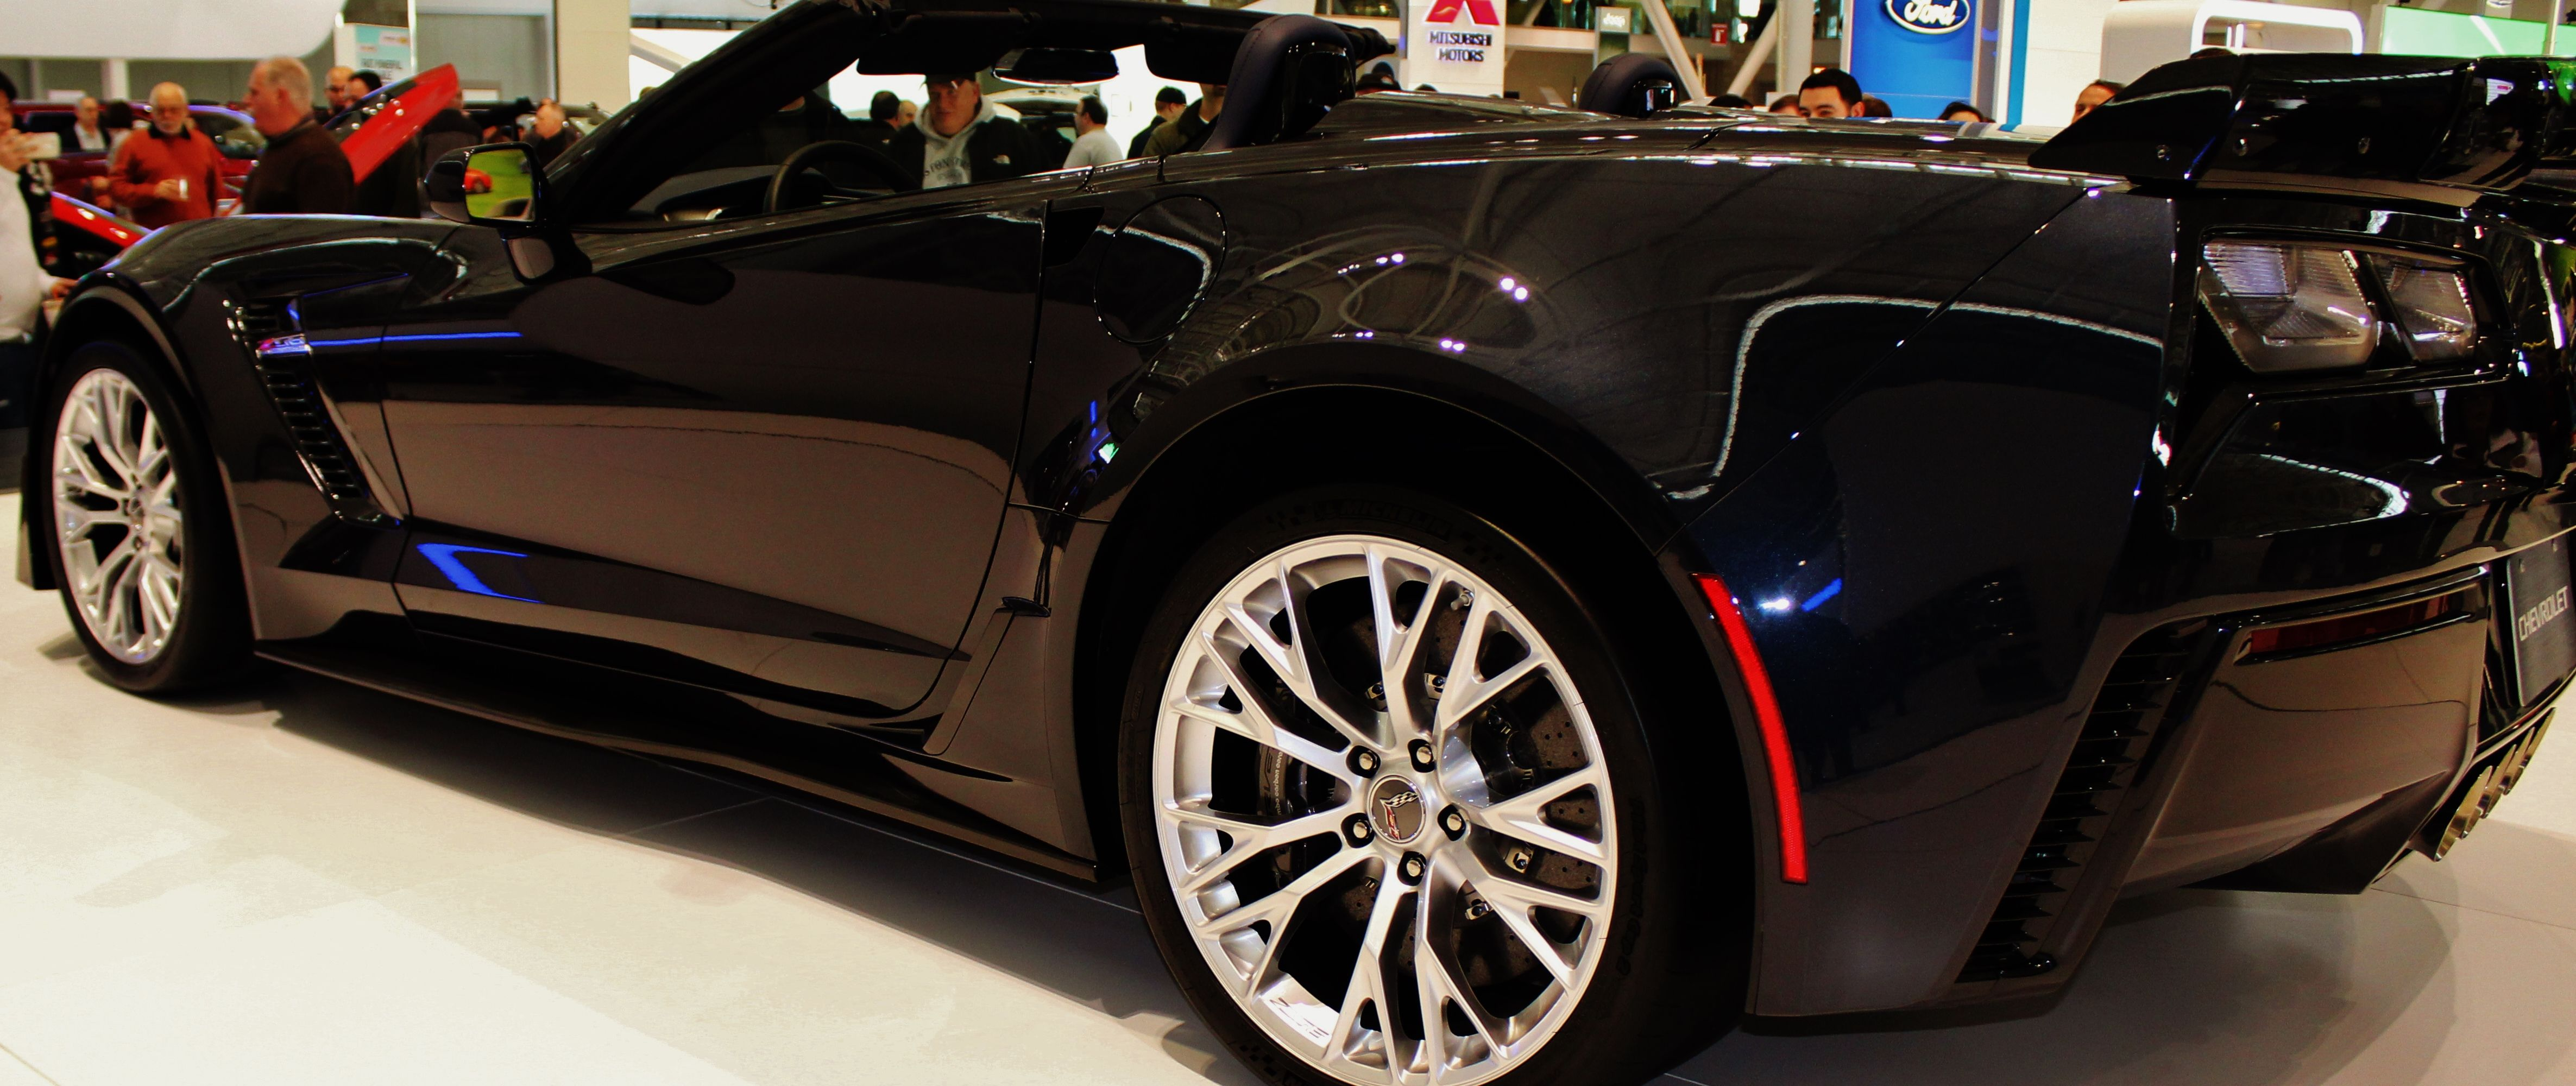 Boston Car Show CORVETTE Pinterest Cars - Boston car show this weekend